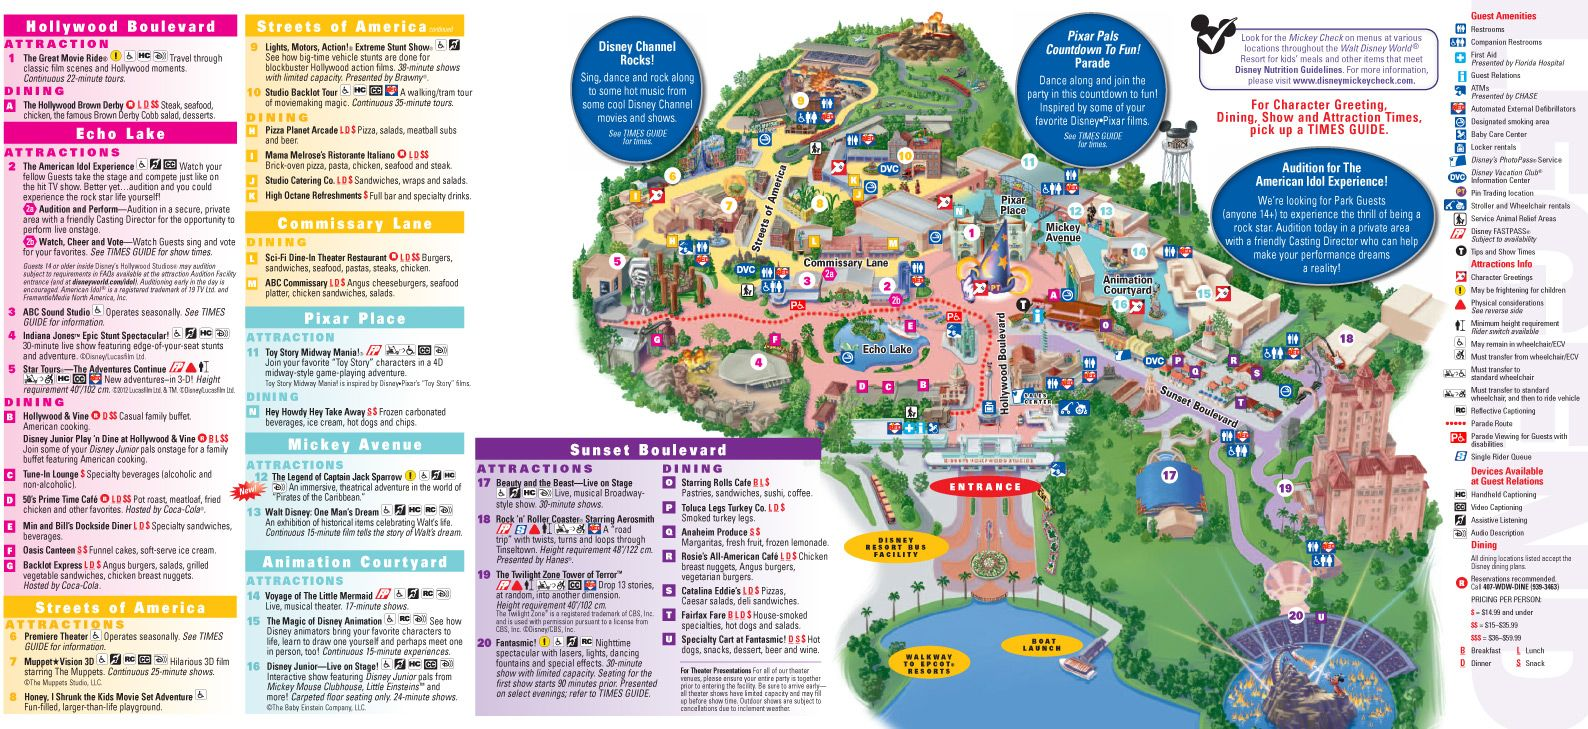 2013 Hollywood Studios Map | Trip to Disney in 2019 | Disney world ...